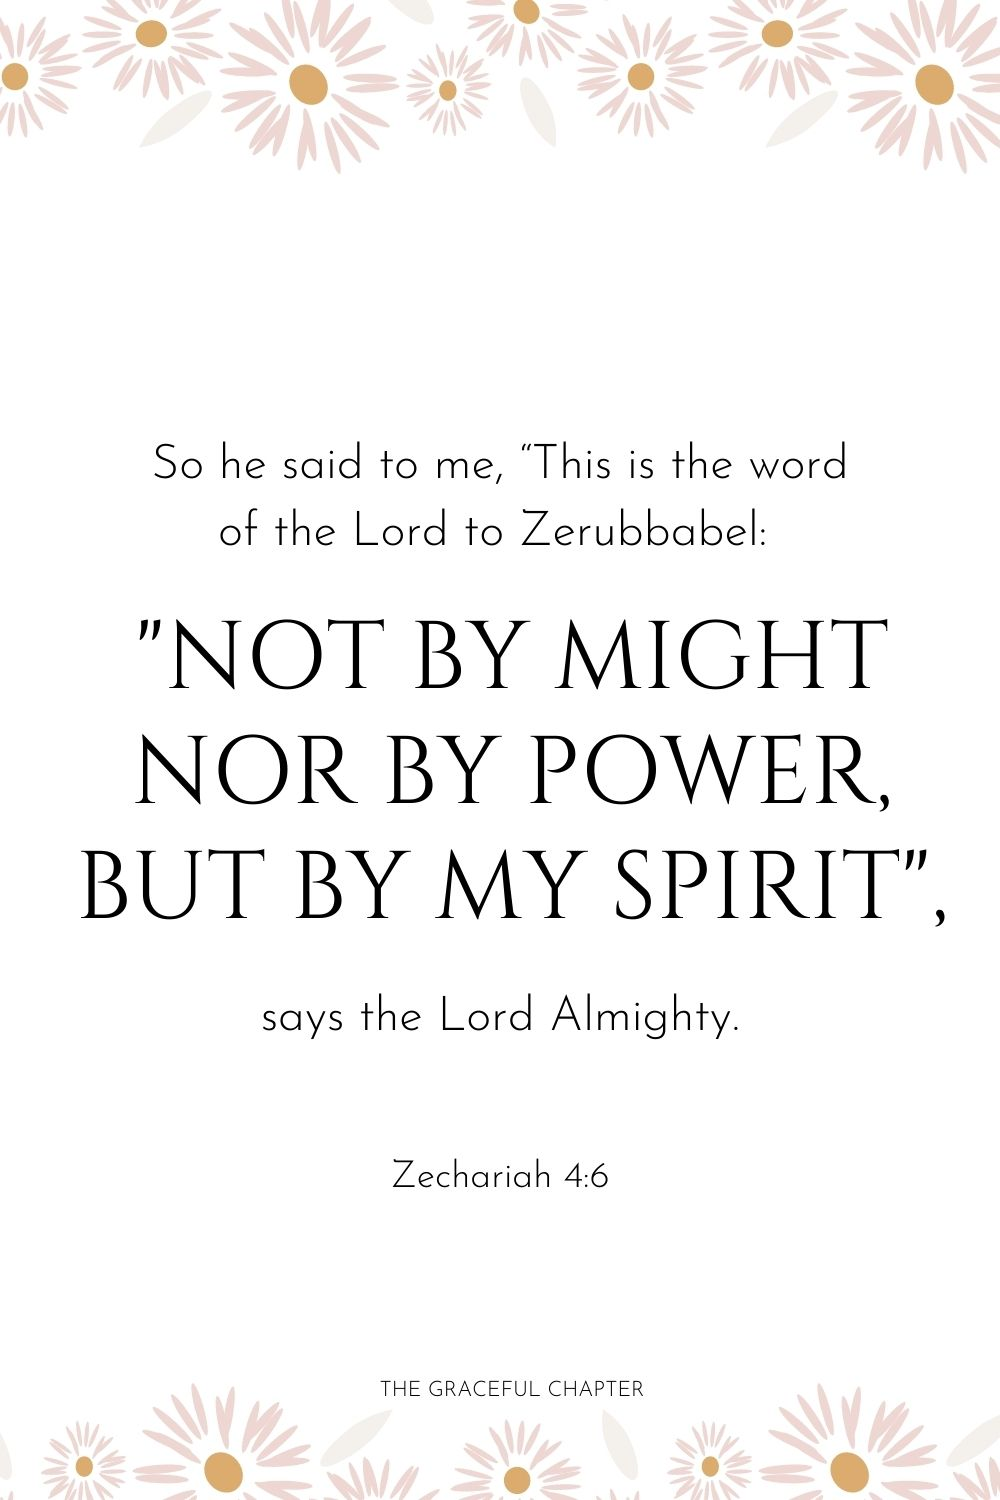 "So he said to me, ""This is the word of the Lord to Zerubbabel: 'Not by might nor by power, but by my Spirit,' says the Lord Almighty. Zechariah 4:6"